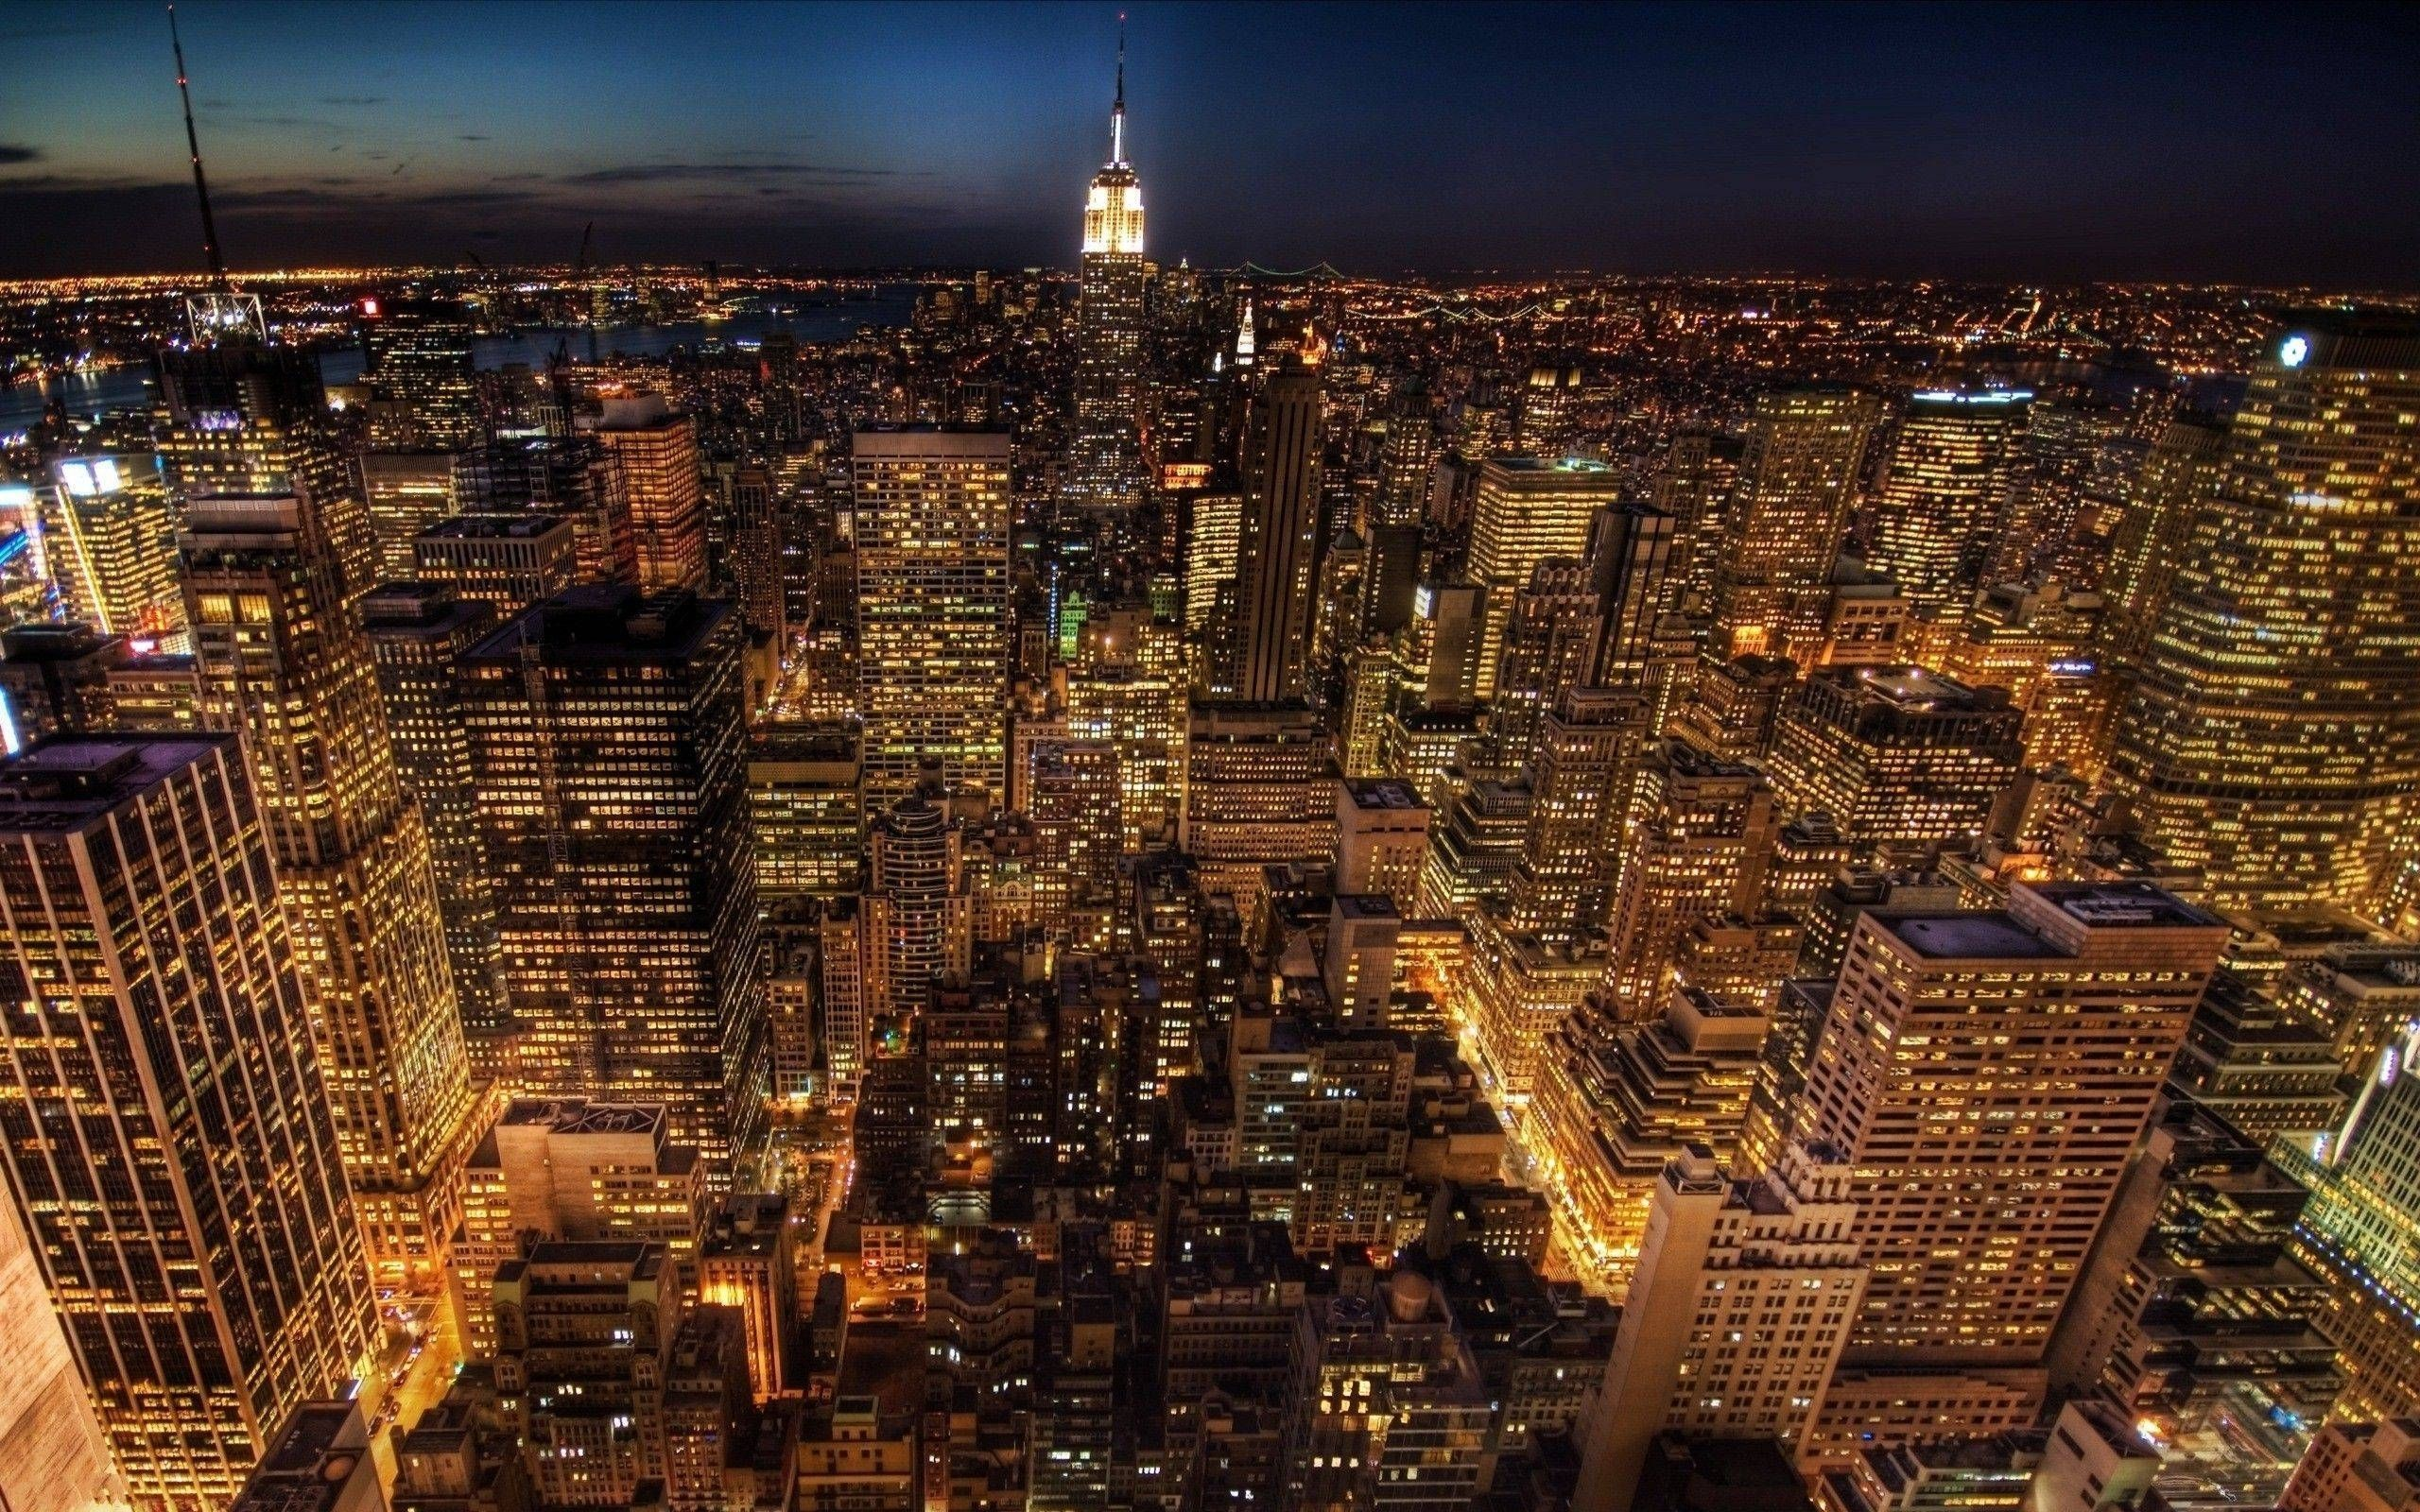 10 Best New York City Night Hd Wallpaper Full Hd 1080p For Pc Background New York Wallpaper New York Night City Wallpaper